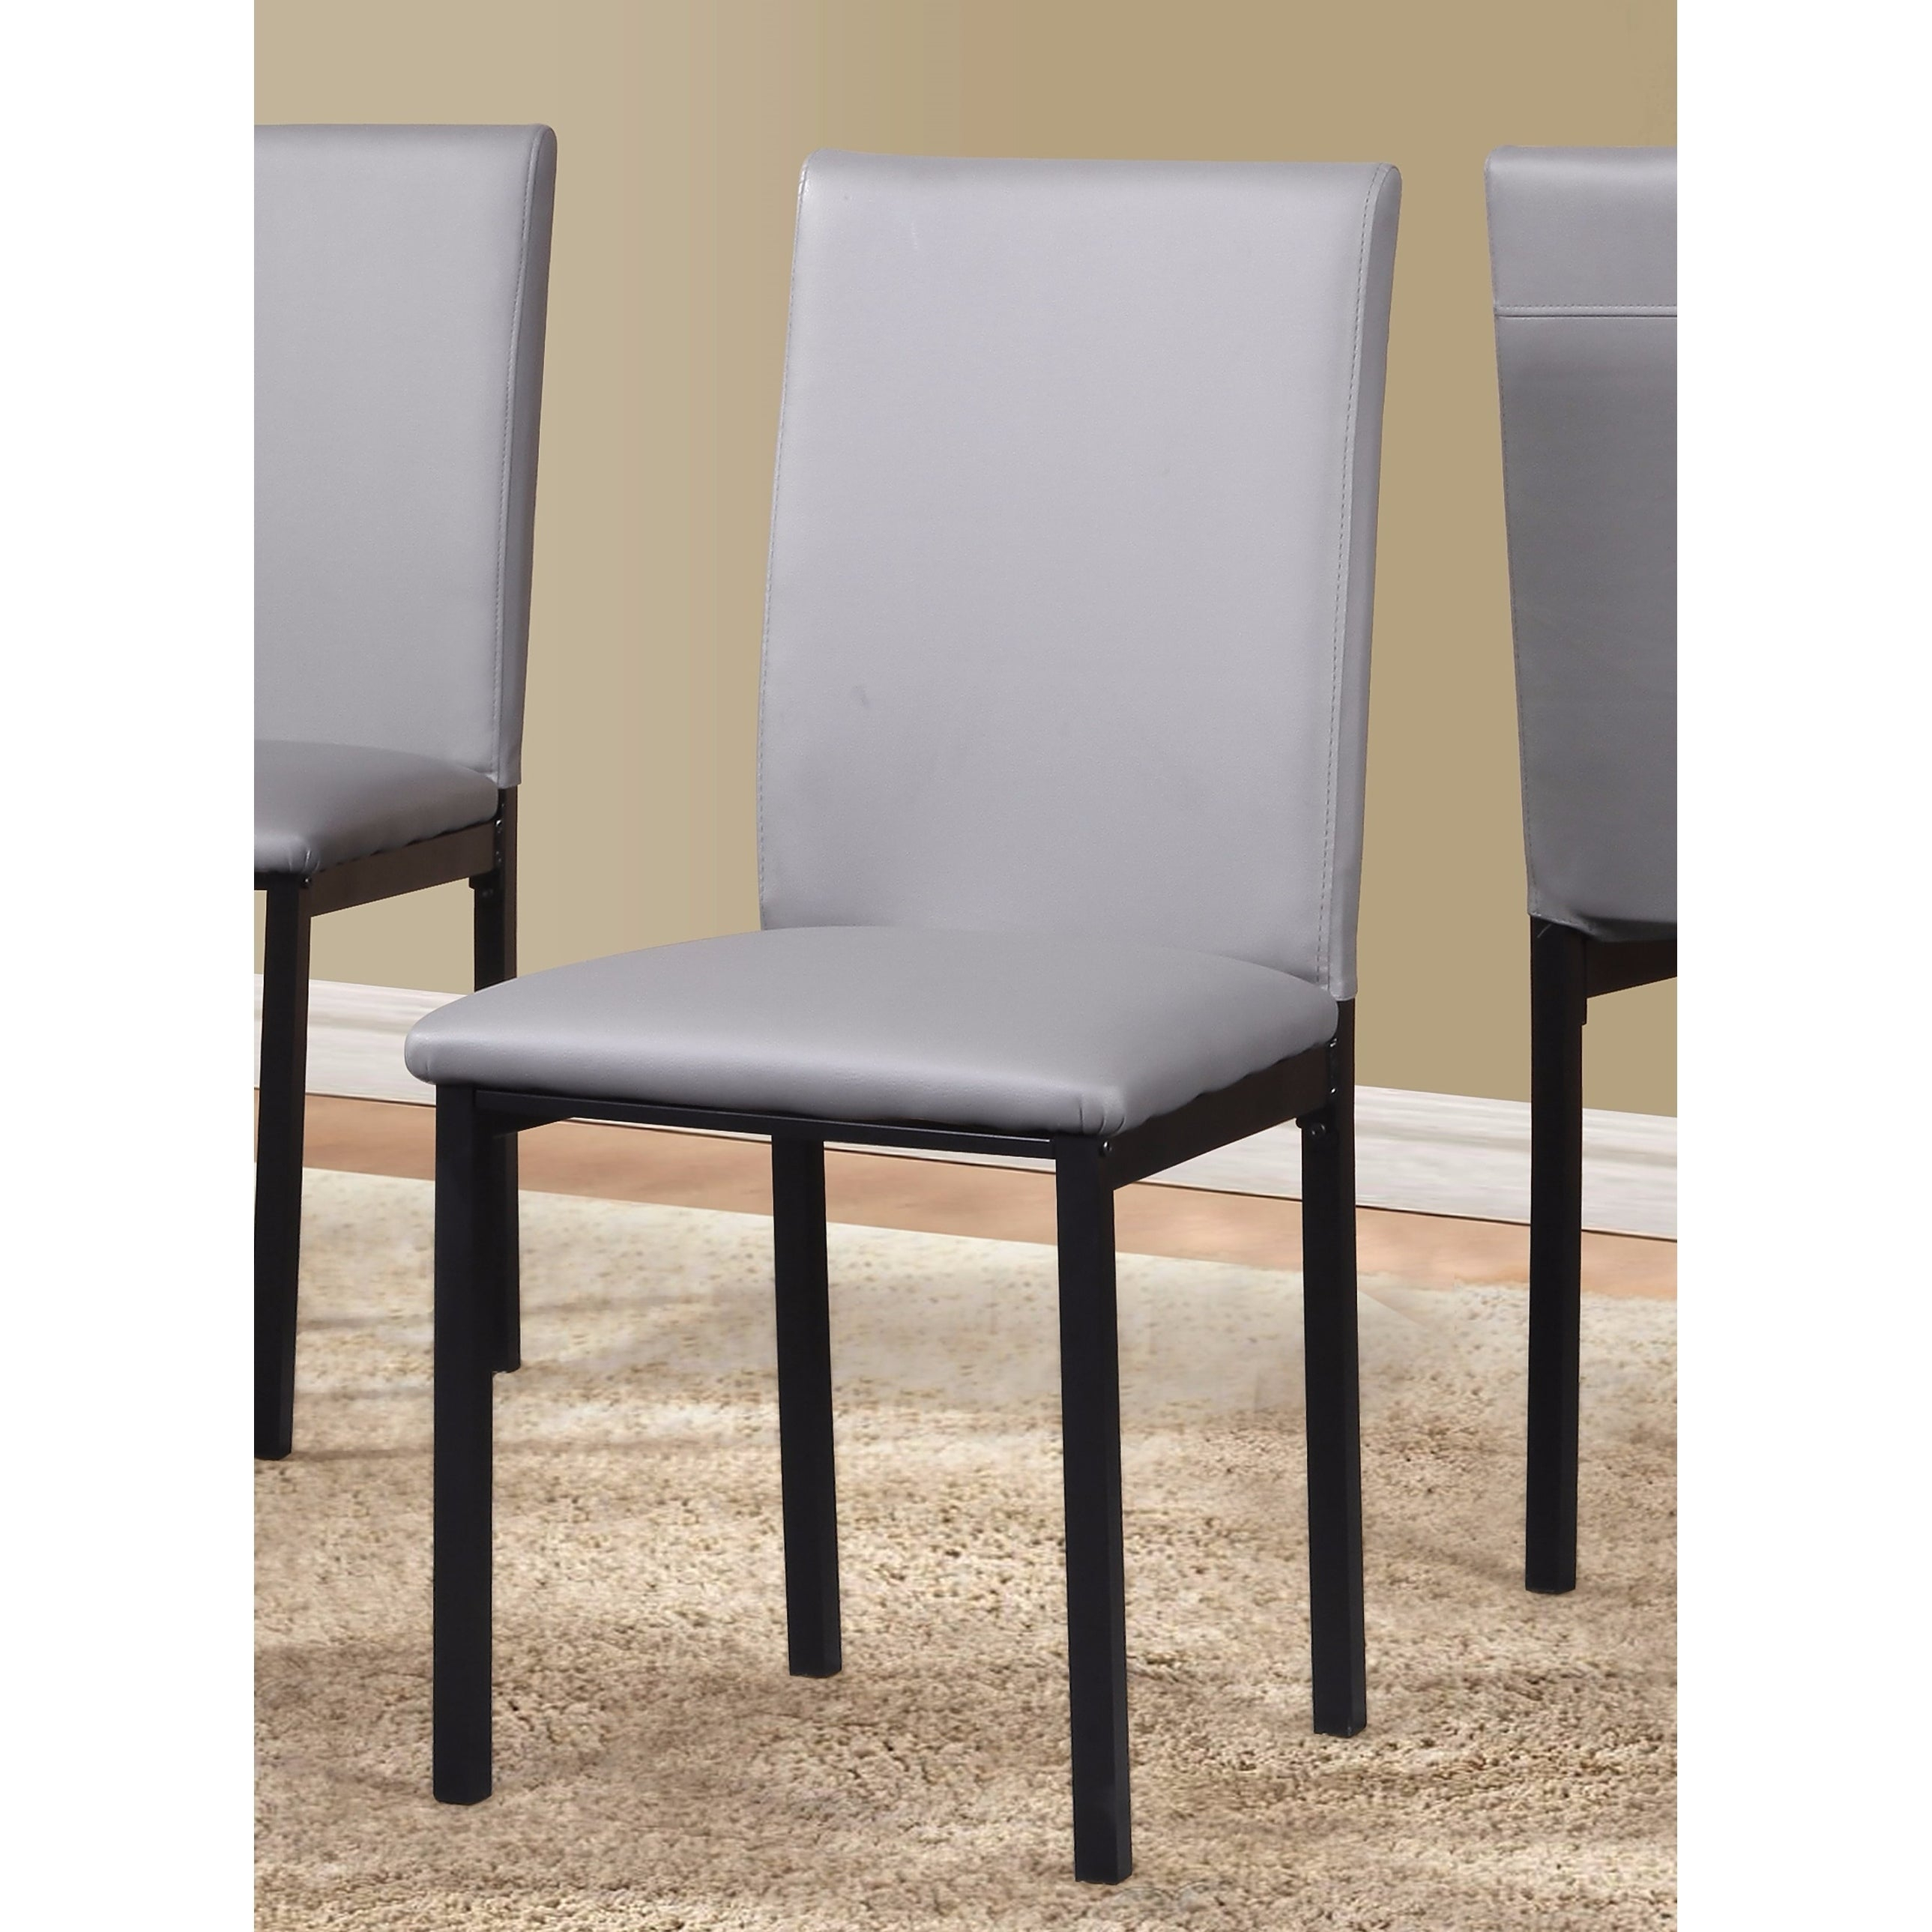 Noyes Faux Leather Seat Metal Frame Black Dining Chairs, Set Of 4 In Newest Noyes 5 Piece Dining Sets (View 19 of 20)